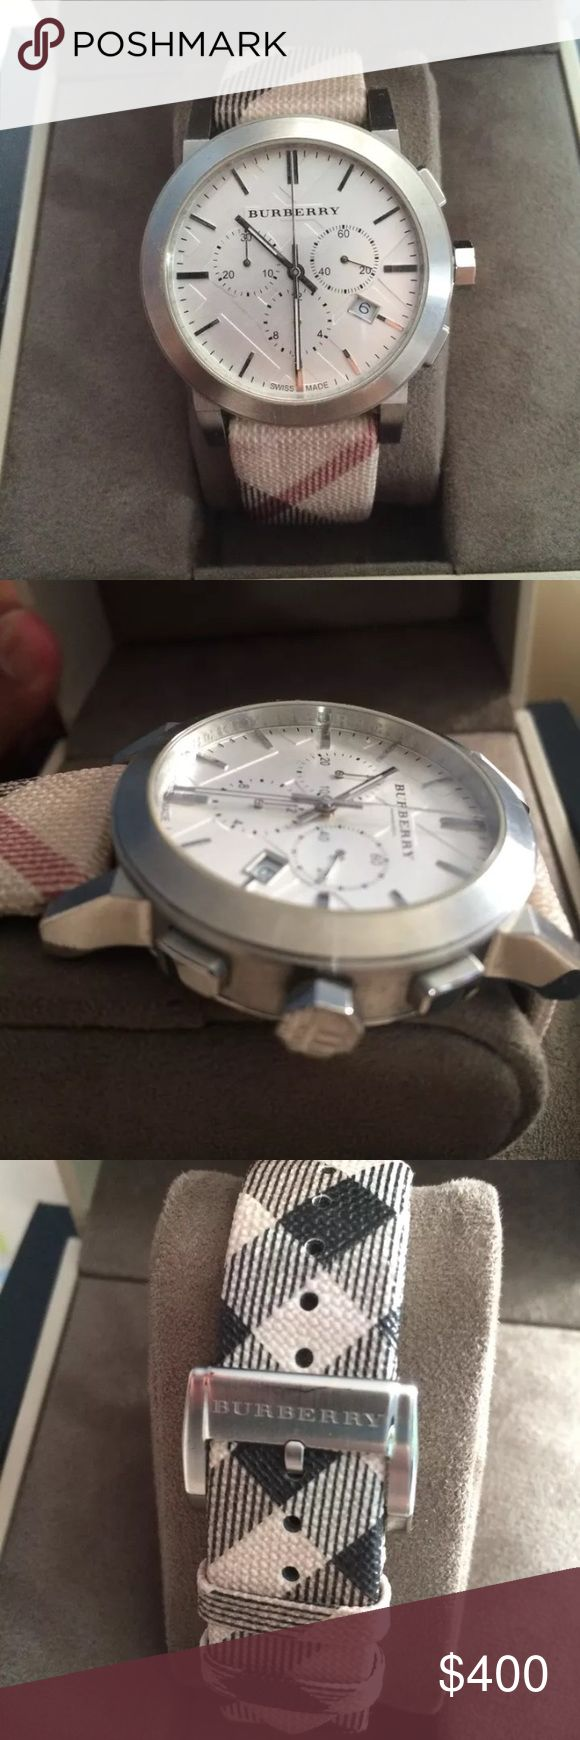 Burberry men's watch Burberry men's watch excellent condition. Has tags original purchased from Macy's Burberry Accessories Jewelry